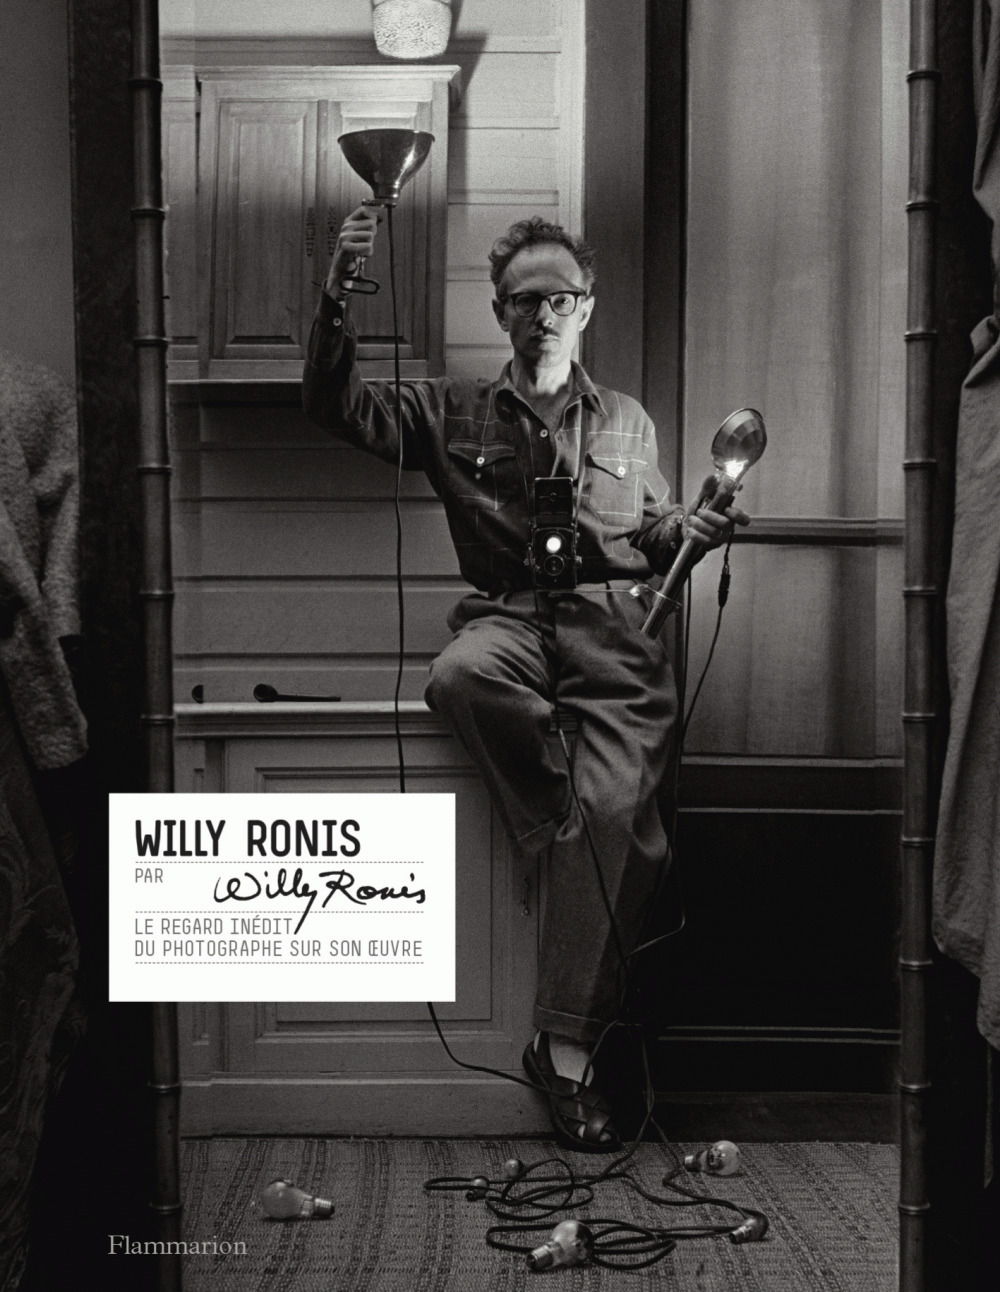 Willy Ronis par Willy Ronis